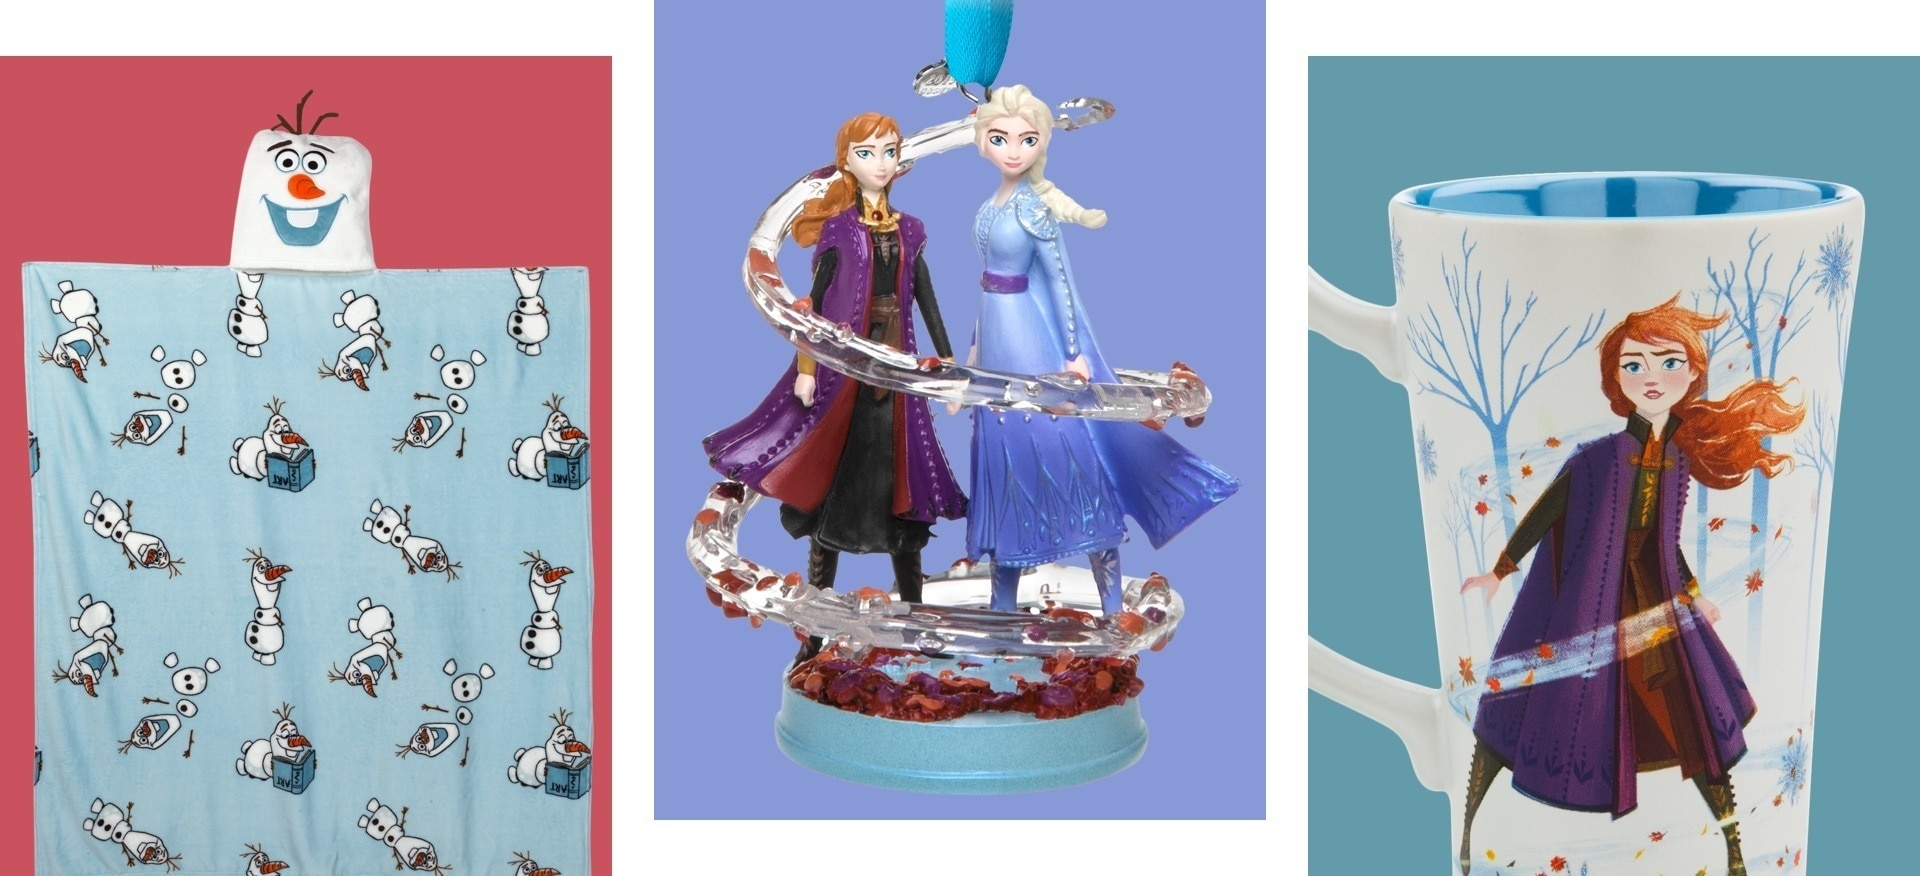 A selection of products inspired by Frozen